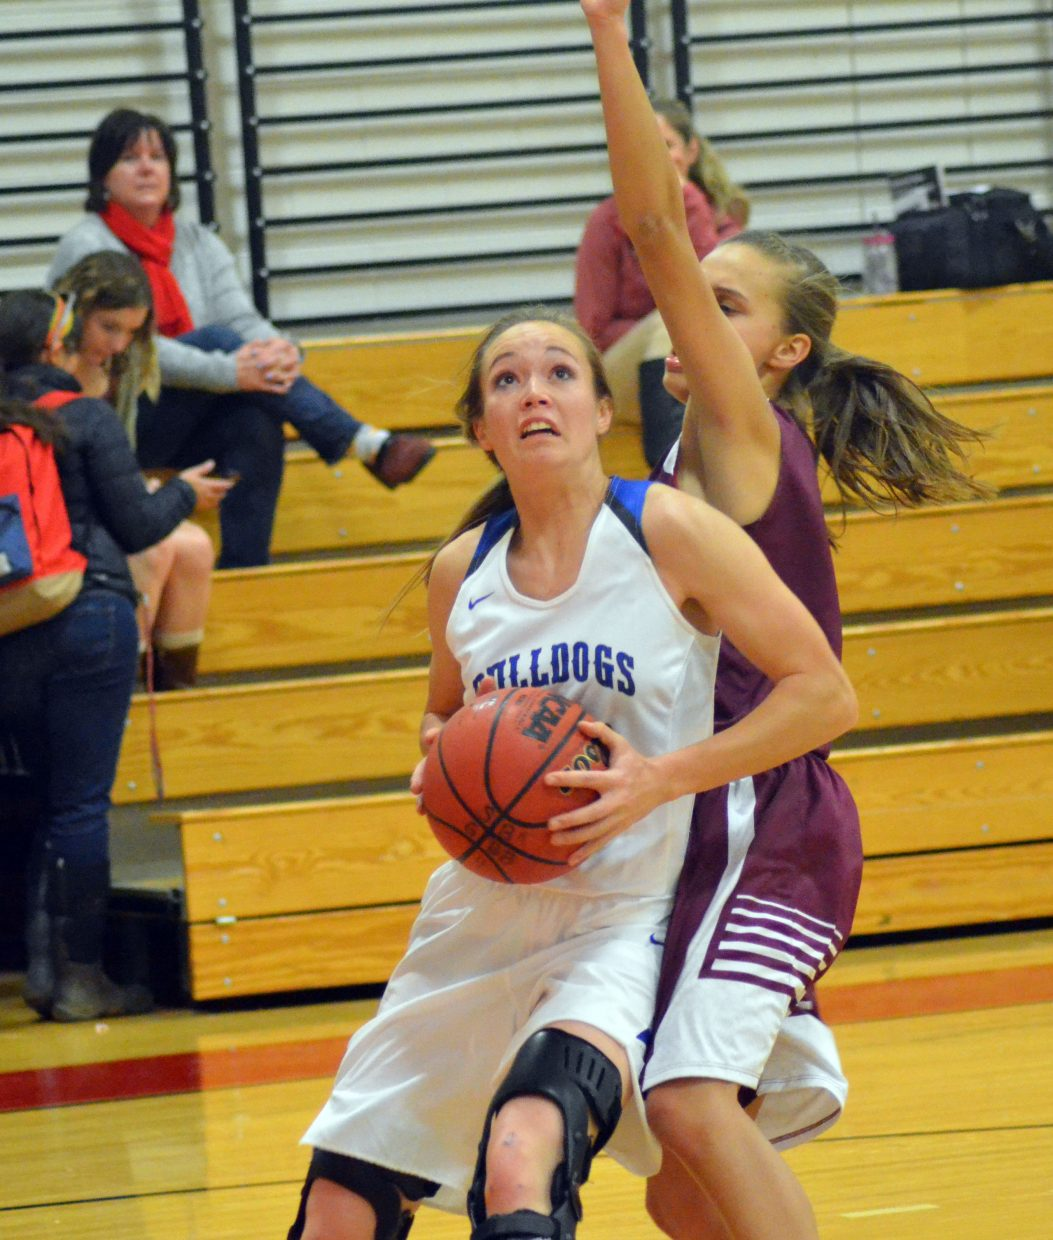 Moffat County High School's Madie Weber looks for a scoring opportunity against Soroco during the Steamboat Springs Shoot-Out. MCHS girls won 43-33 in their second game of the season against the Rams.